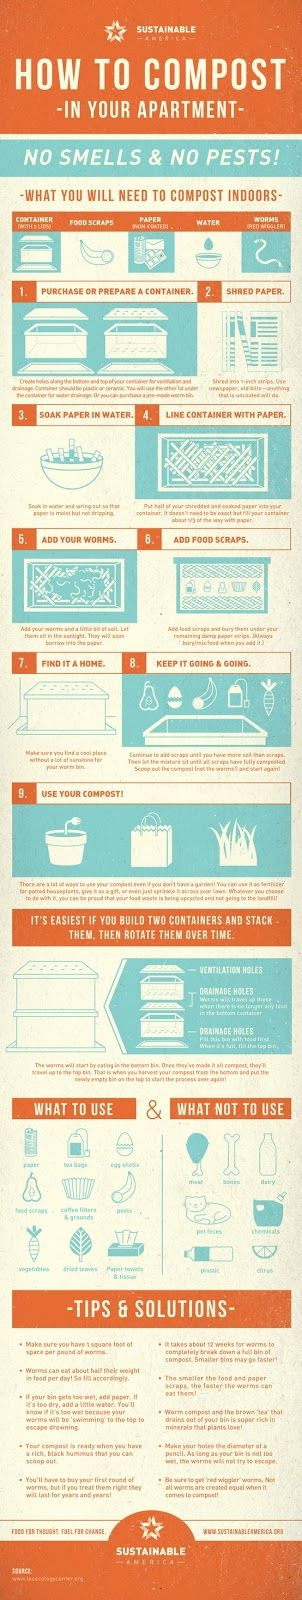 How To Compost In An Apartment.  For one day, you shall have that coveted community garden spot.